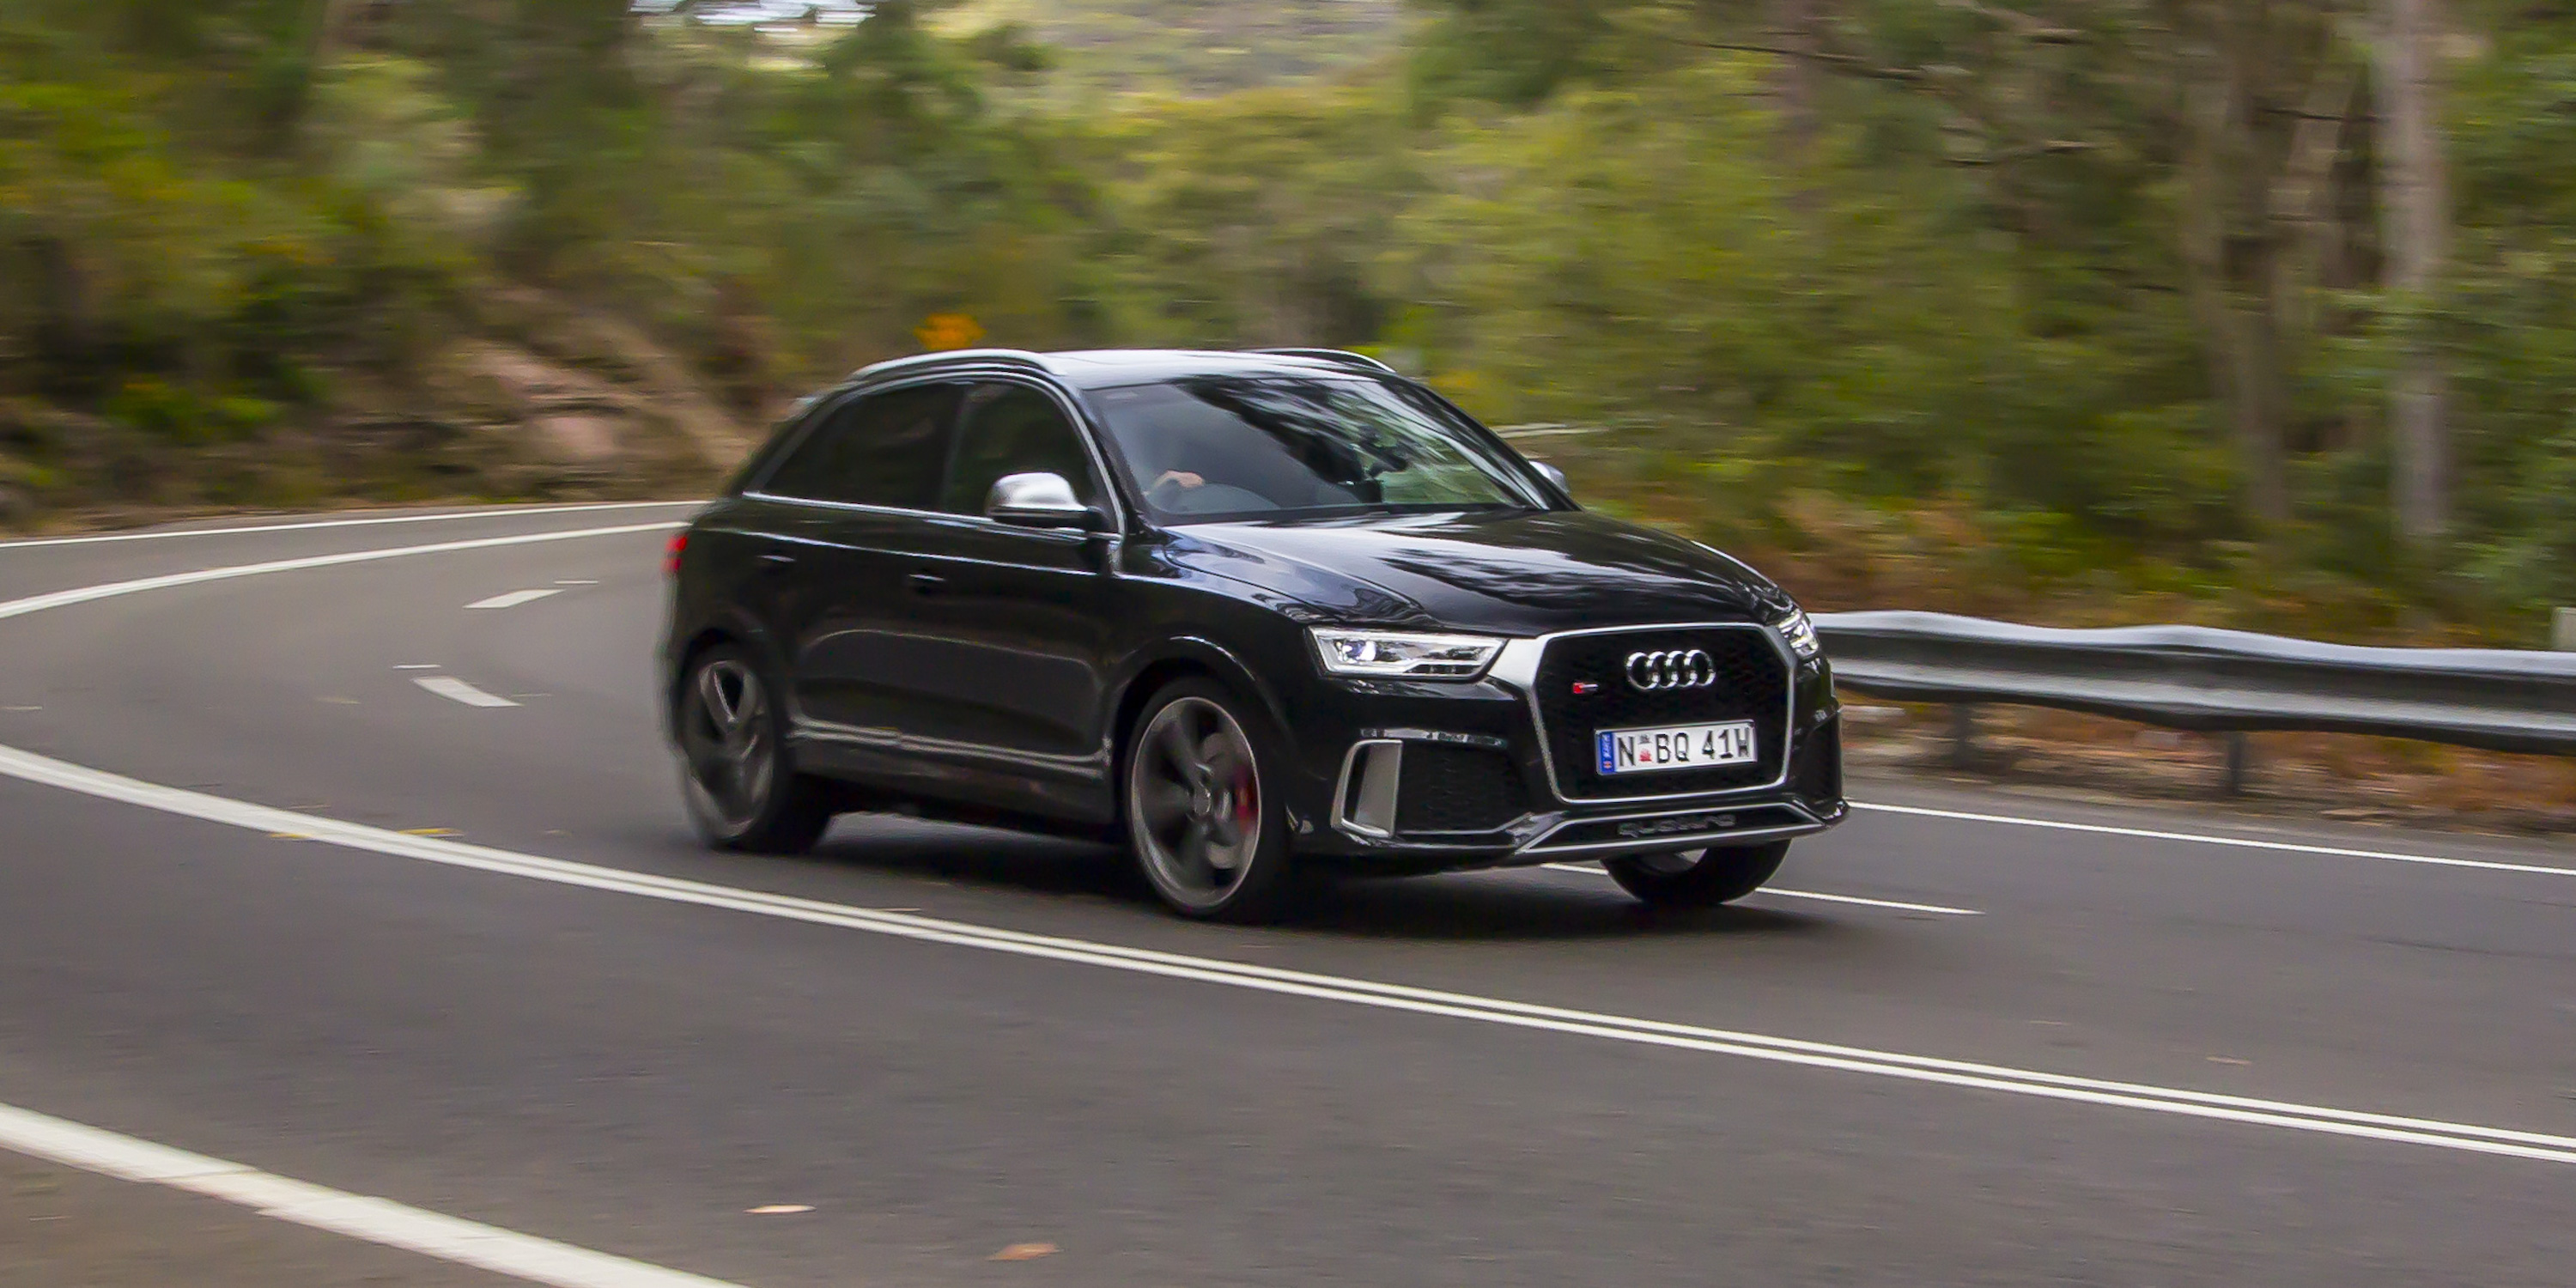 2015 Audi Rs Q3 Review Caradvice